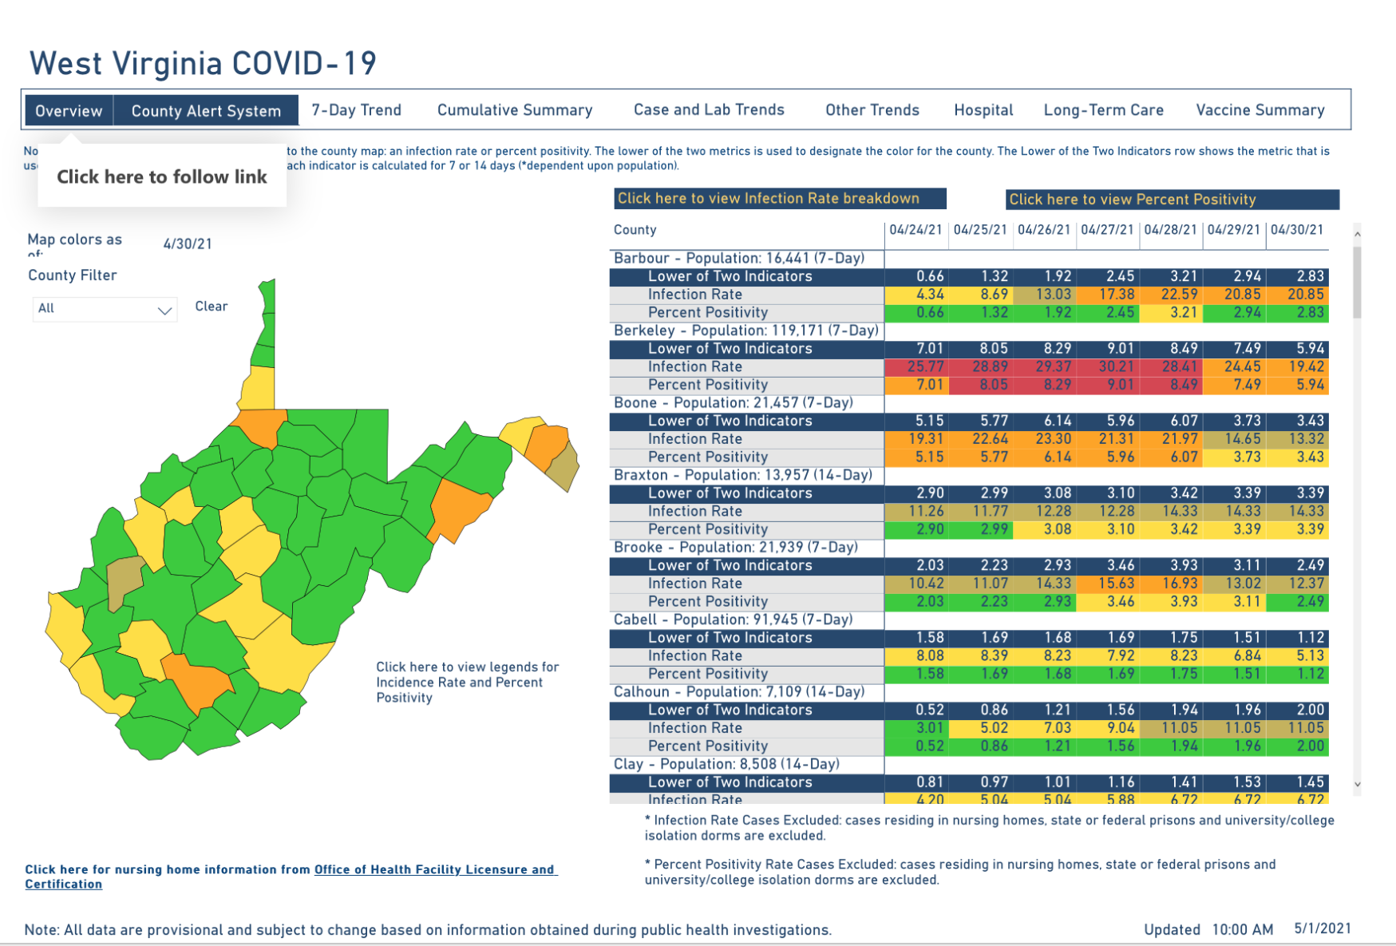 West Virginia COVID-19 County Alert Map, 5-1-2021